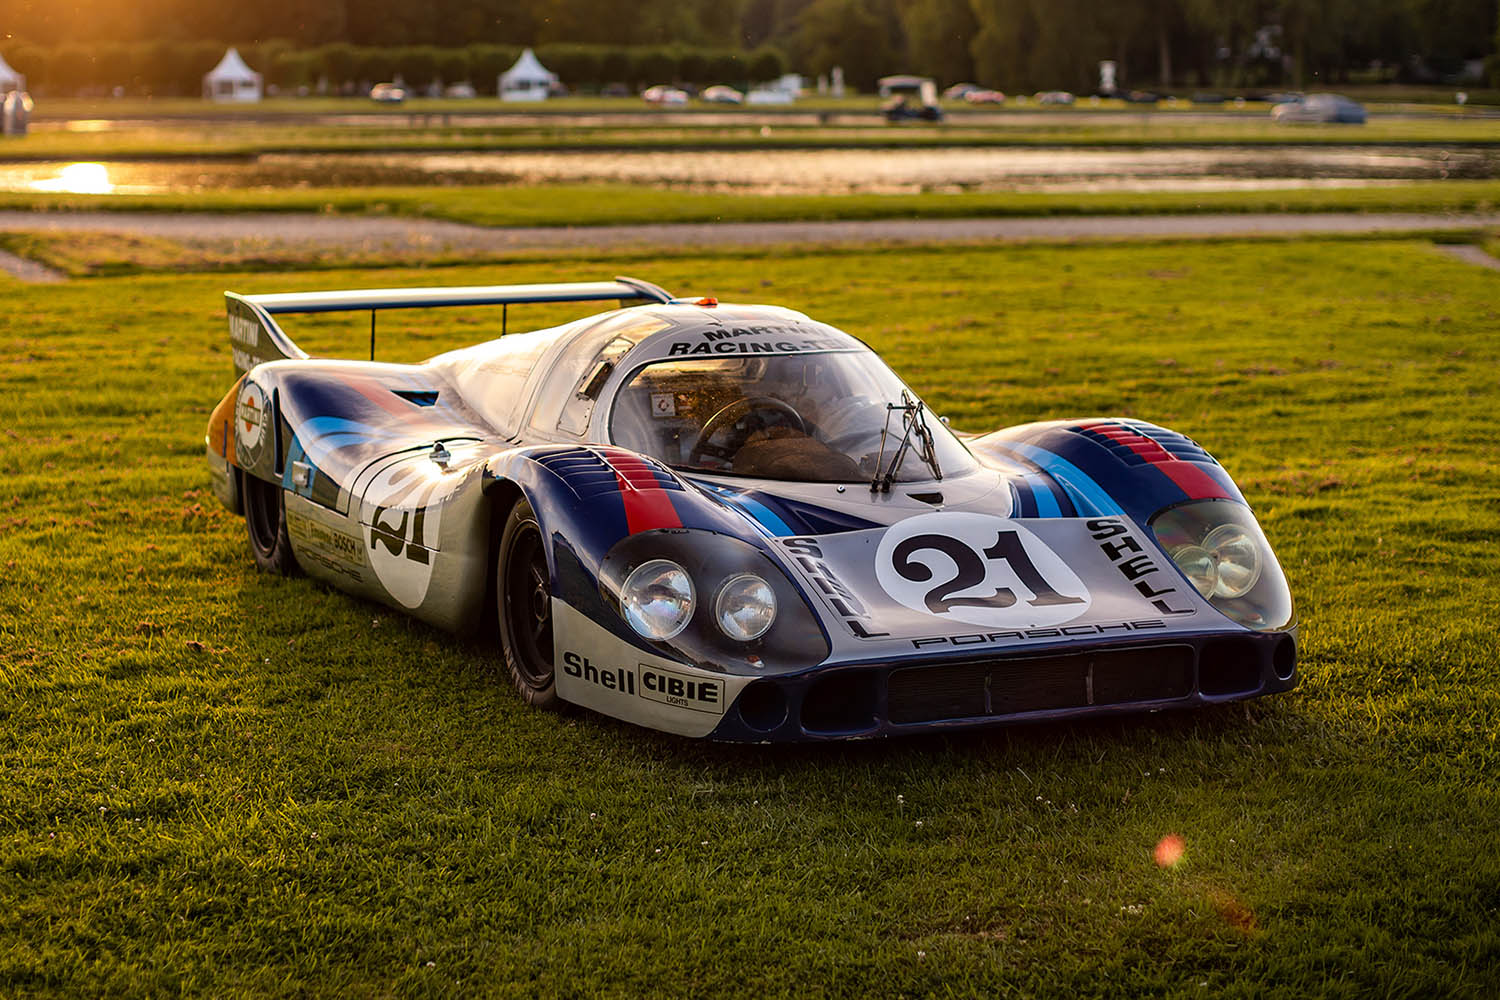 2019_PeterAuto_Chantilly_AlexisGoure_0229.jpg